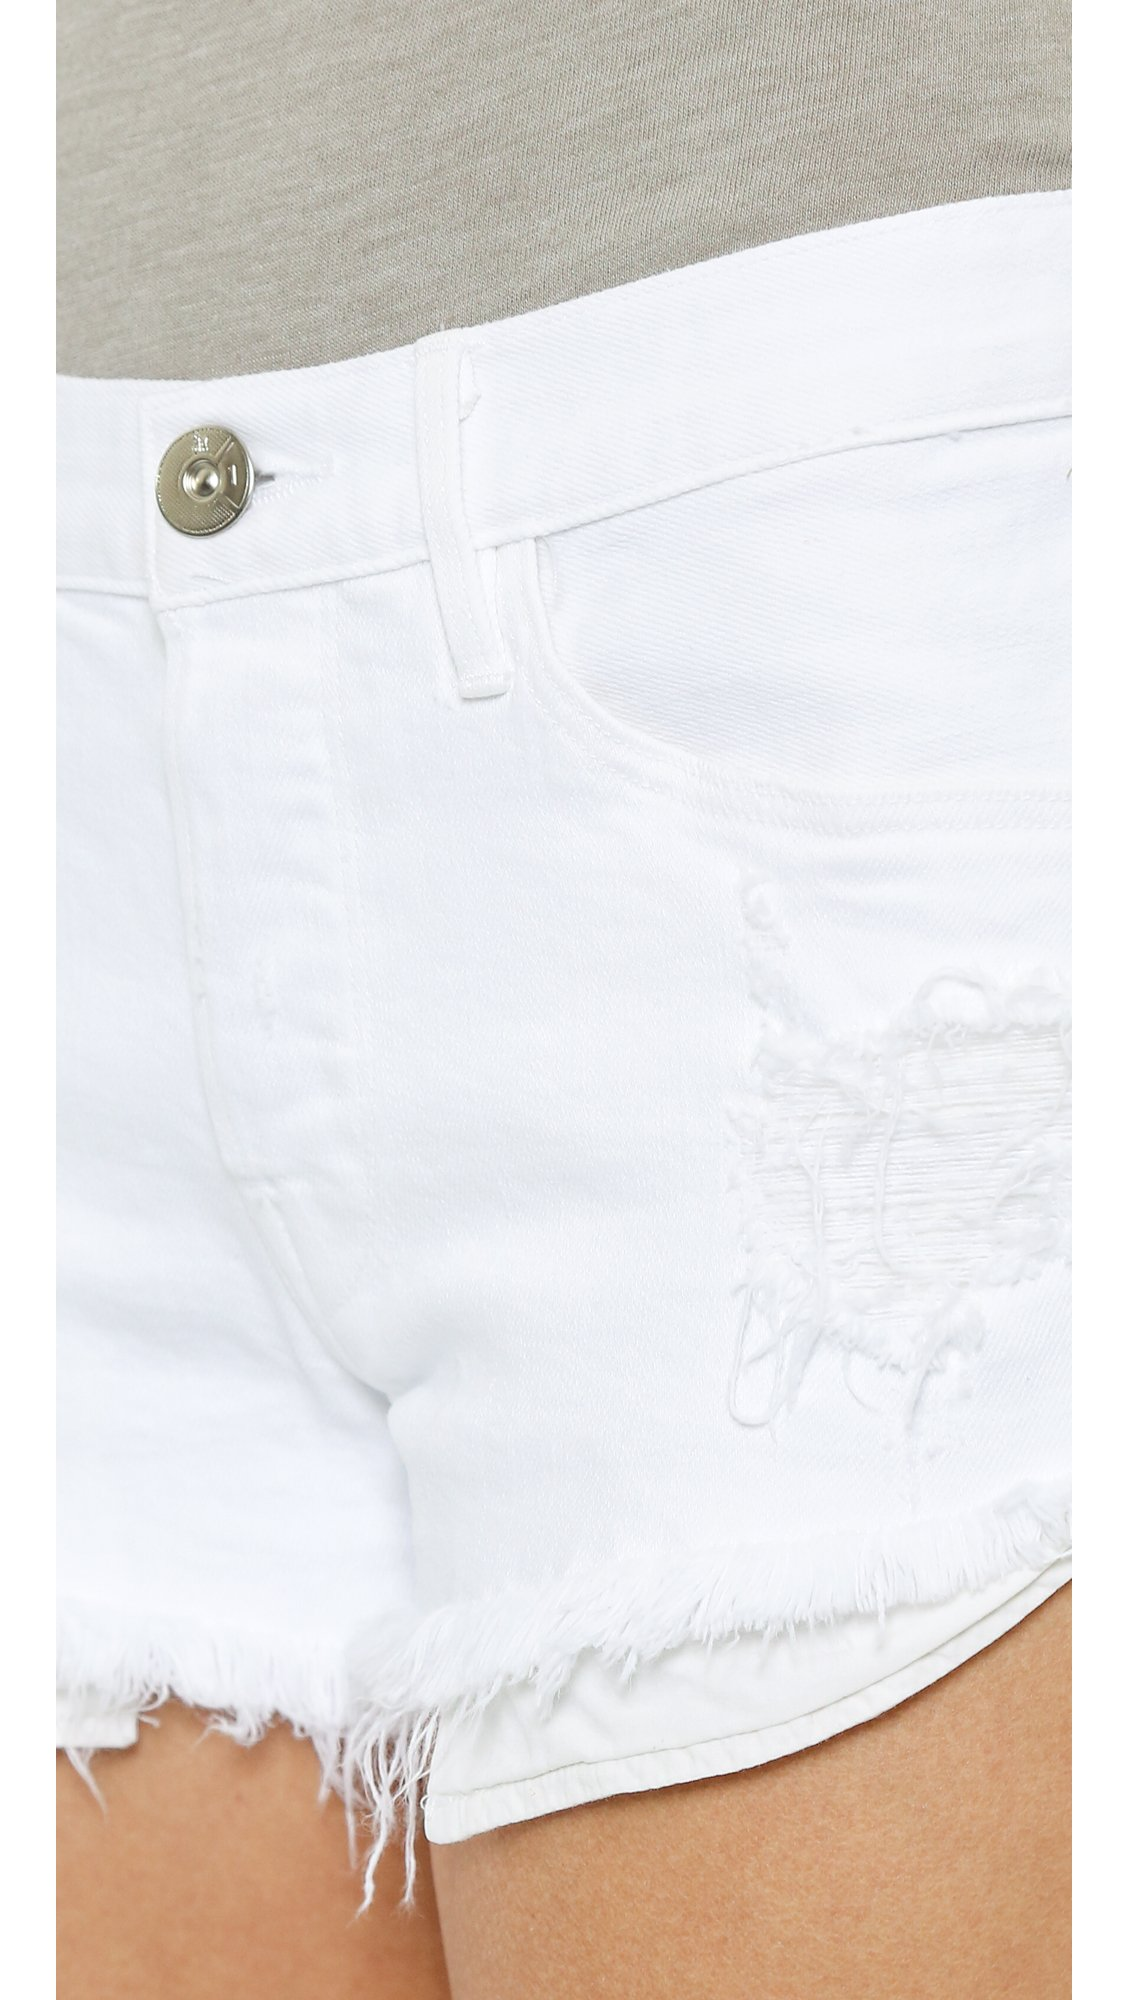 3x1 Women's WM5 Selvedge Cutoff Shorts, White Stone Ripper, 24 by 3x1 (Image #5)